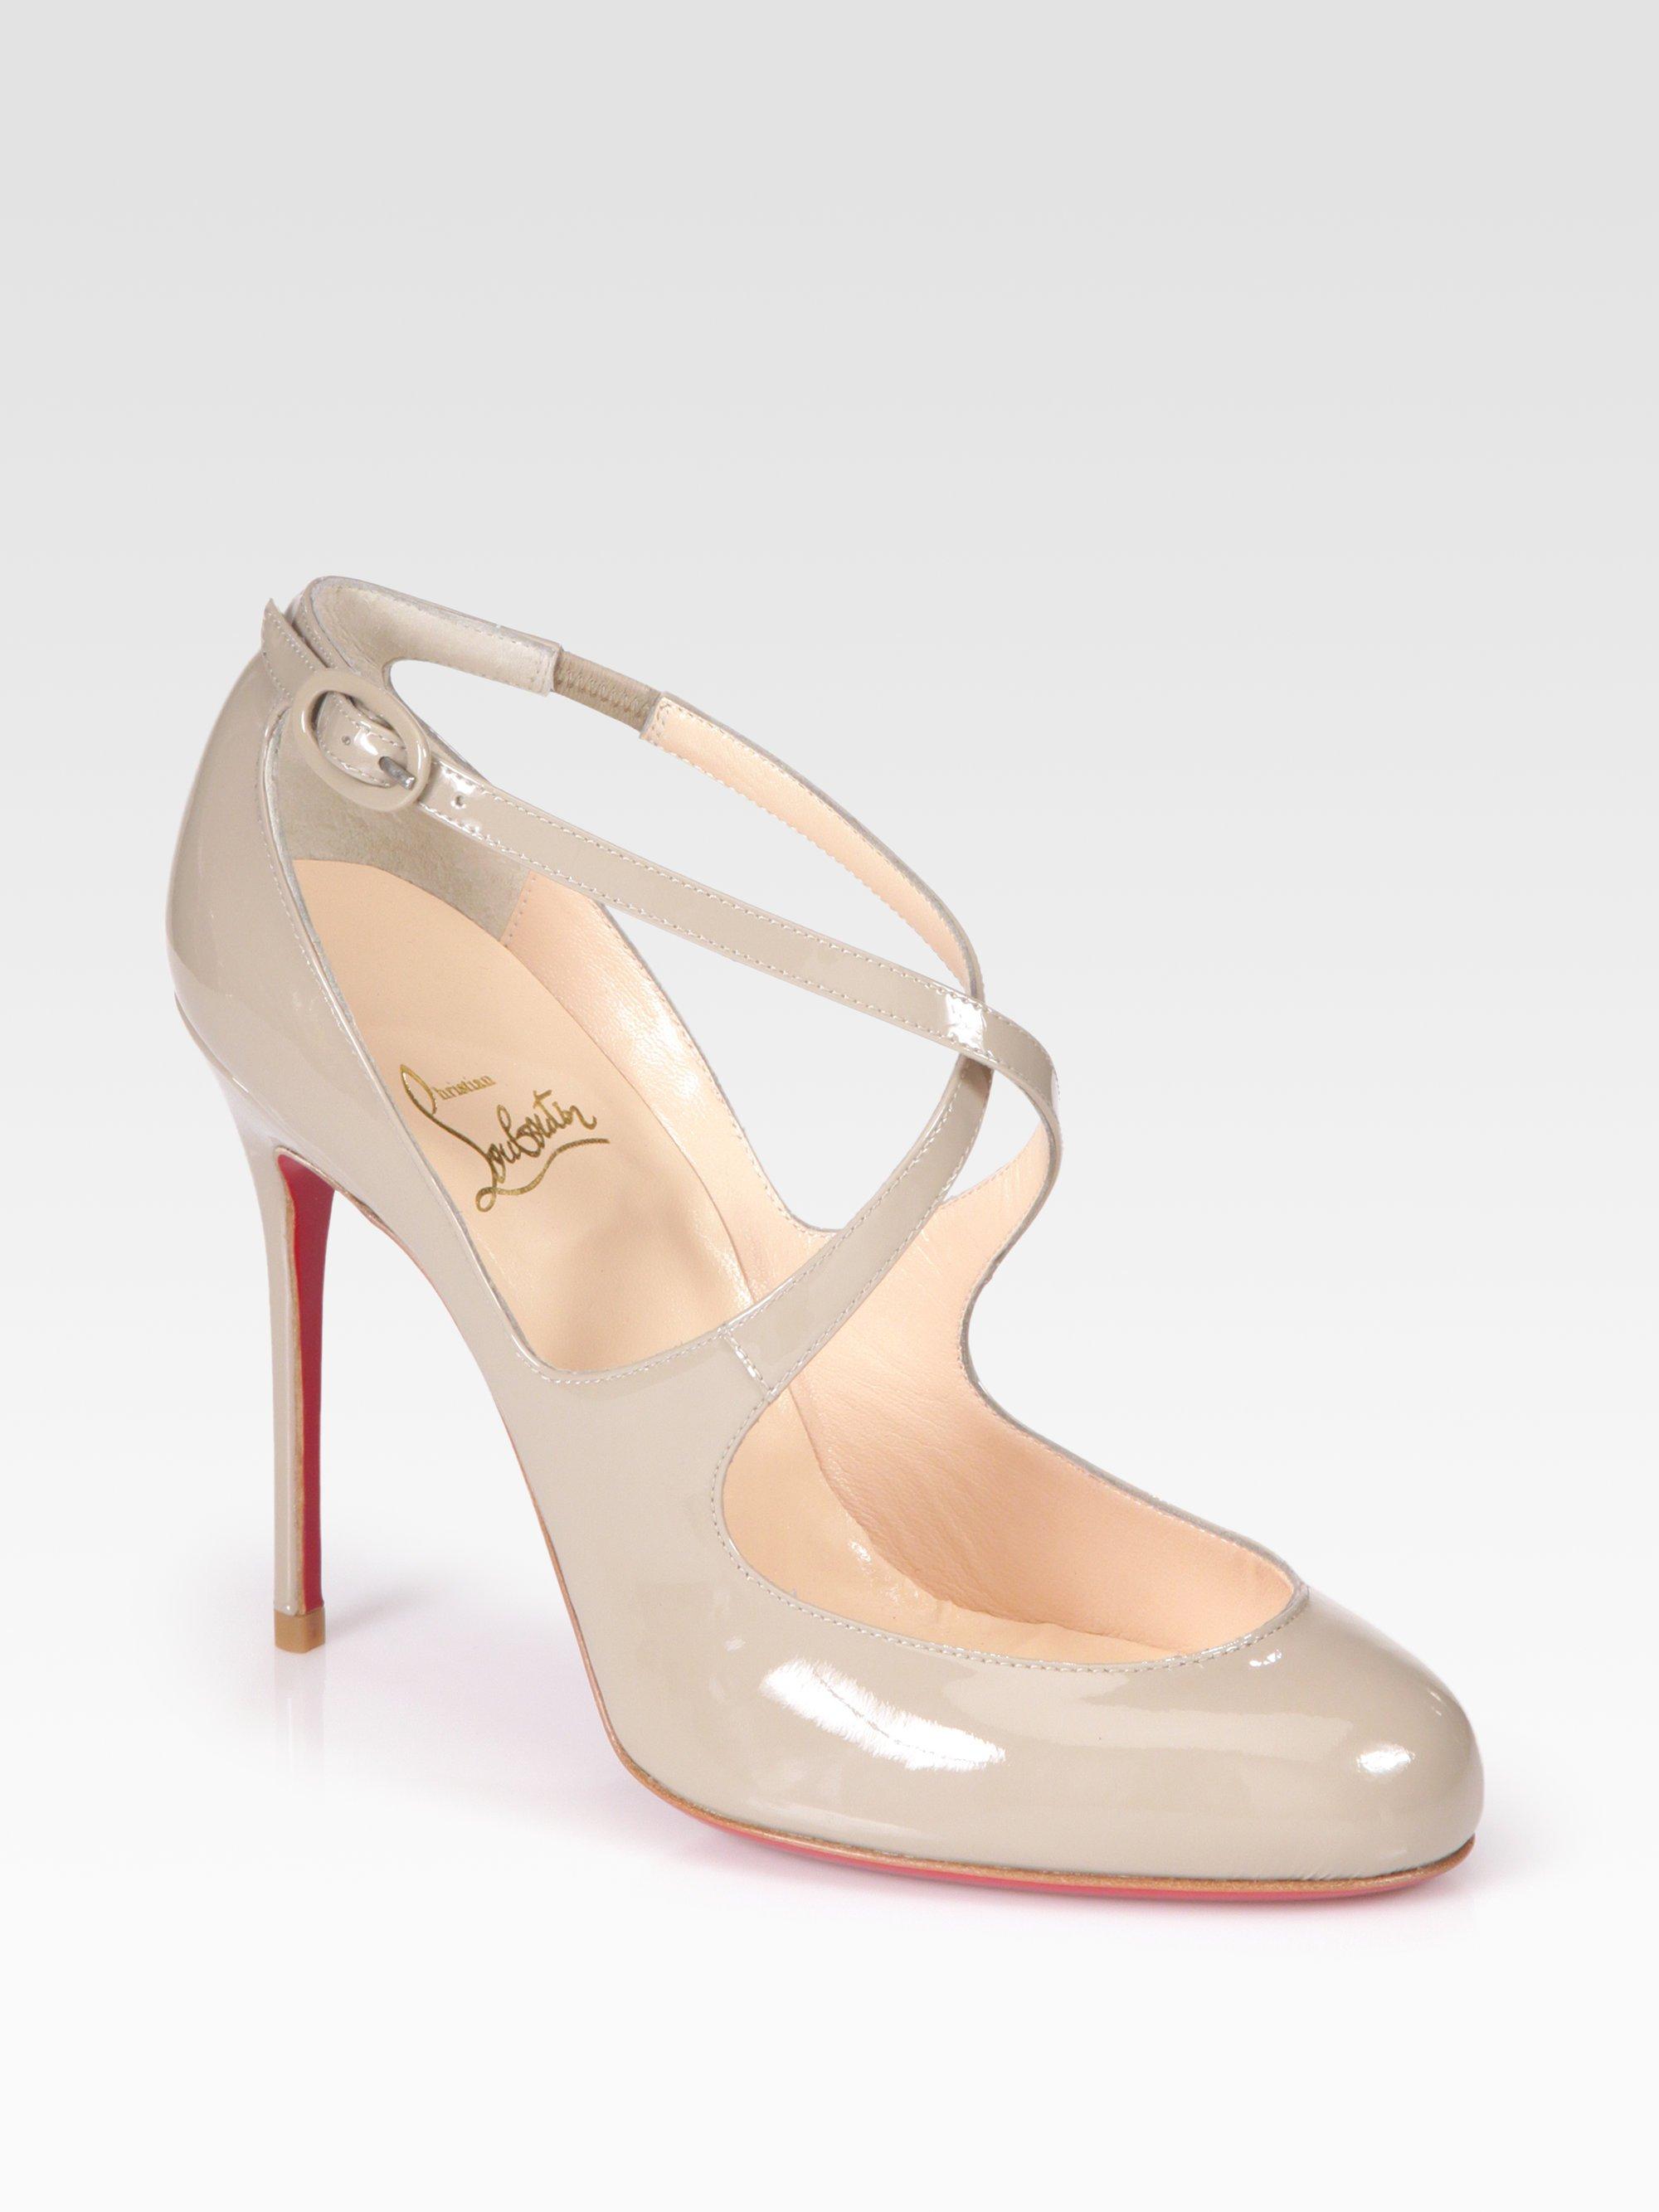 christian louboutin leather platform mary jane pumps